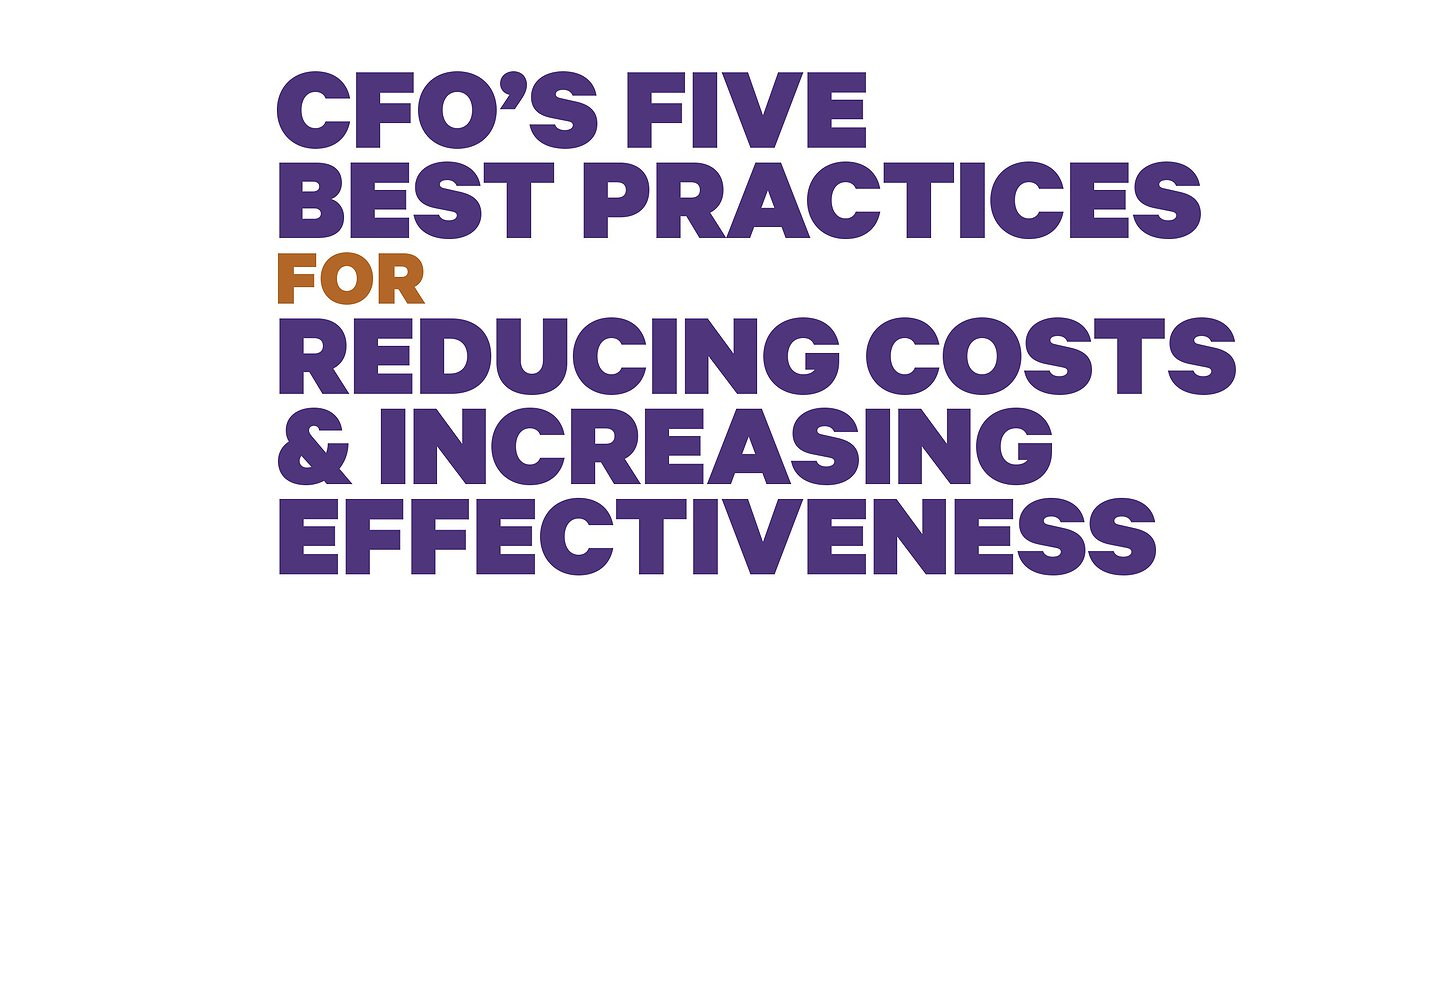 CFO's Five Best Practices for Reducing Costs and Increasing Effectiveness